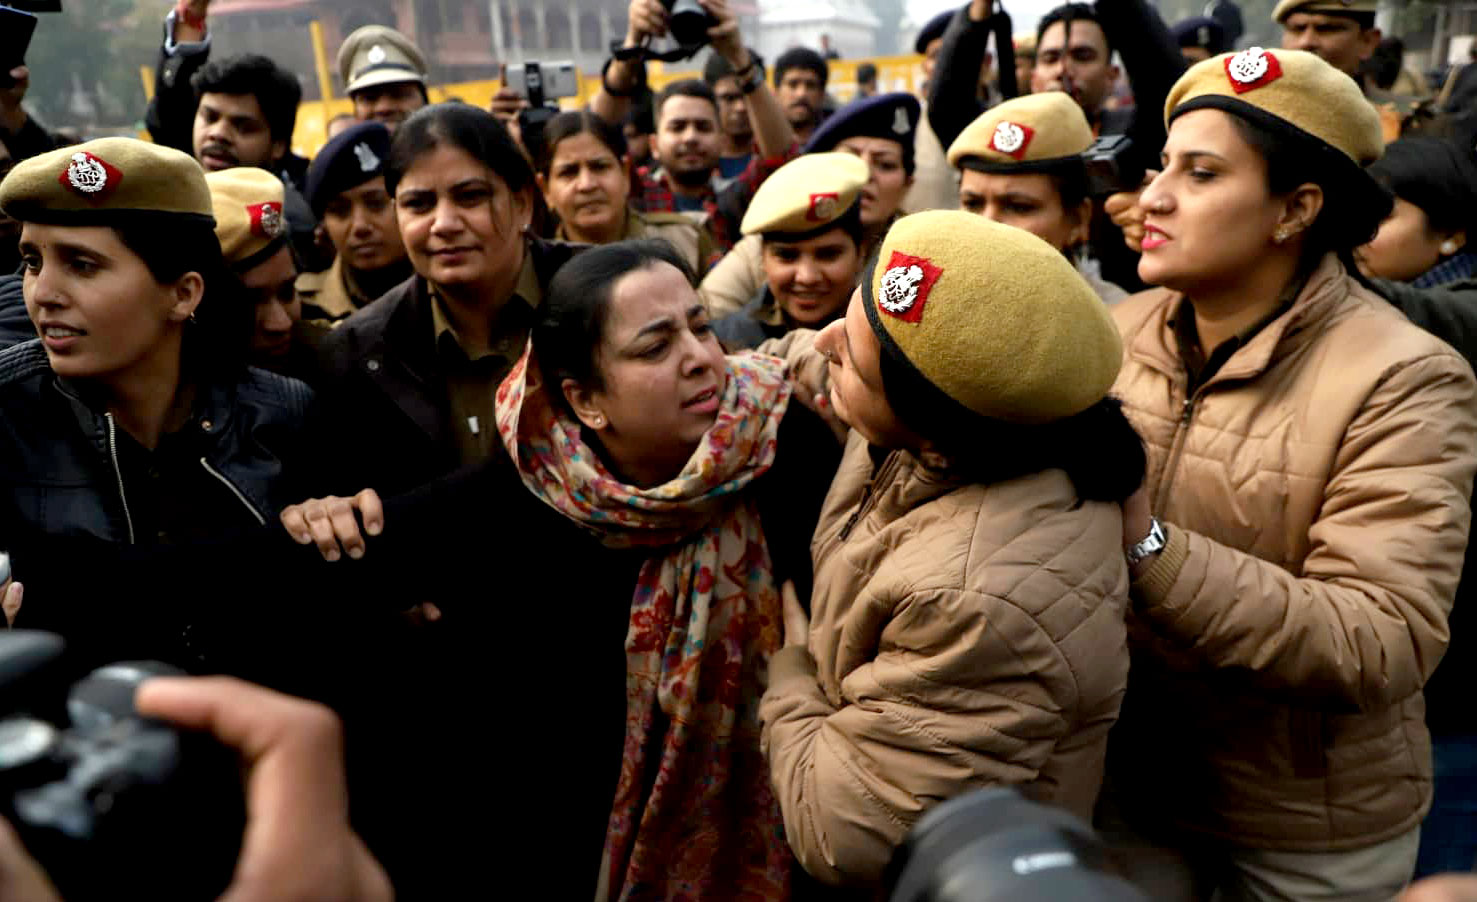 Police arrests a lady protestor near Red Fort, Delhi. Image by Nasir Kachroo